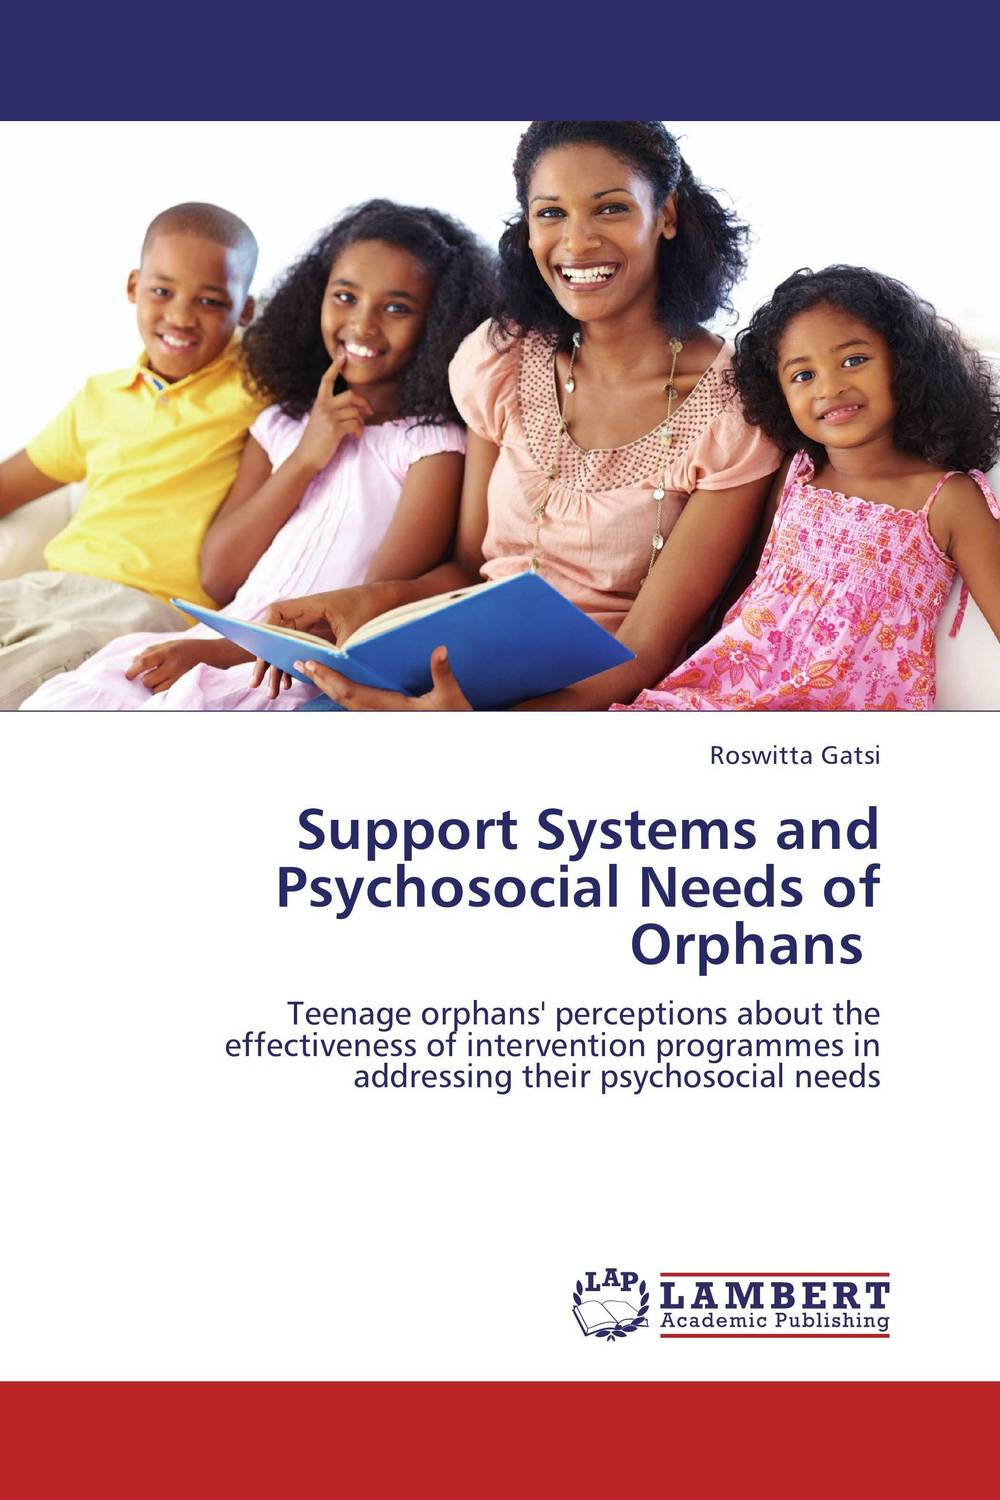 Support Systems and Psychosocial Needs of Orphans postpartum psychosocial support